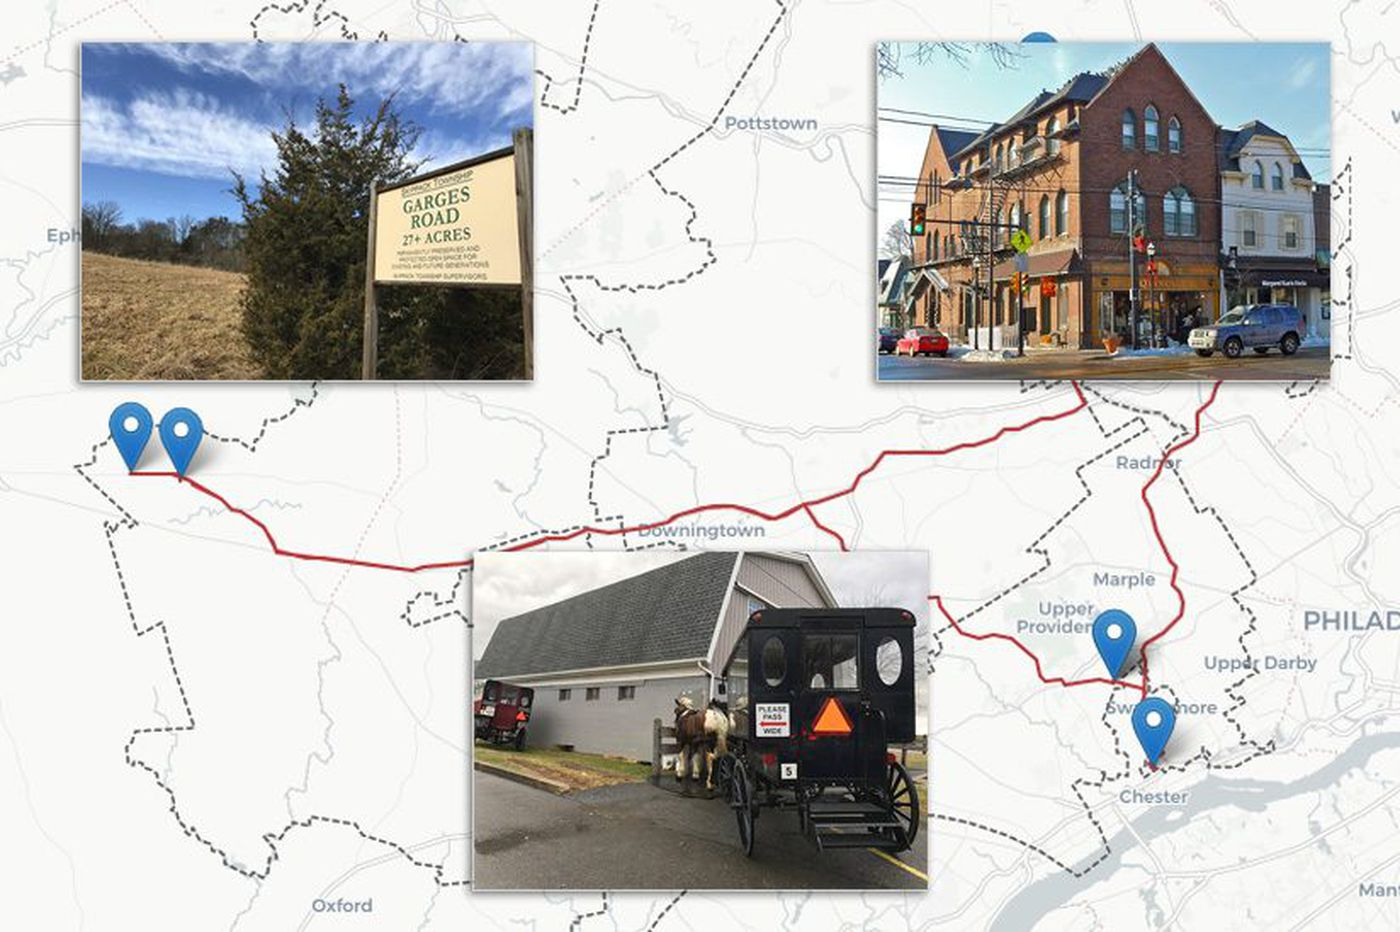 Pat Meehan's district: A trippin' road trip through Pennsylvania's most gerrymandered Land of Make Believe | Maria Panaritis